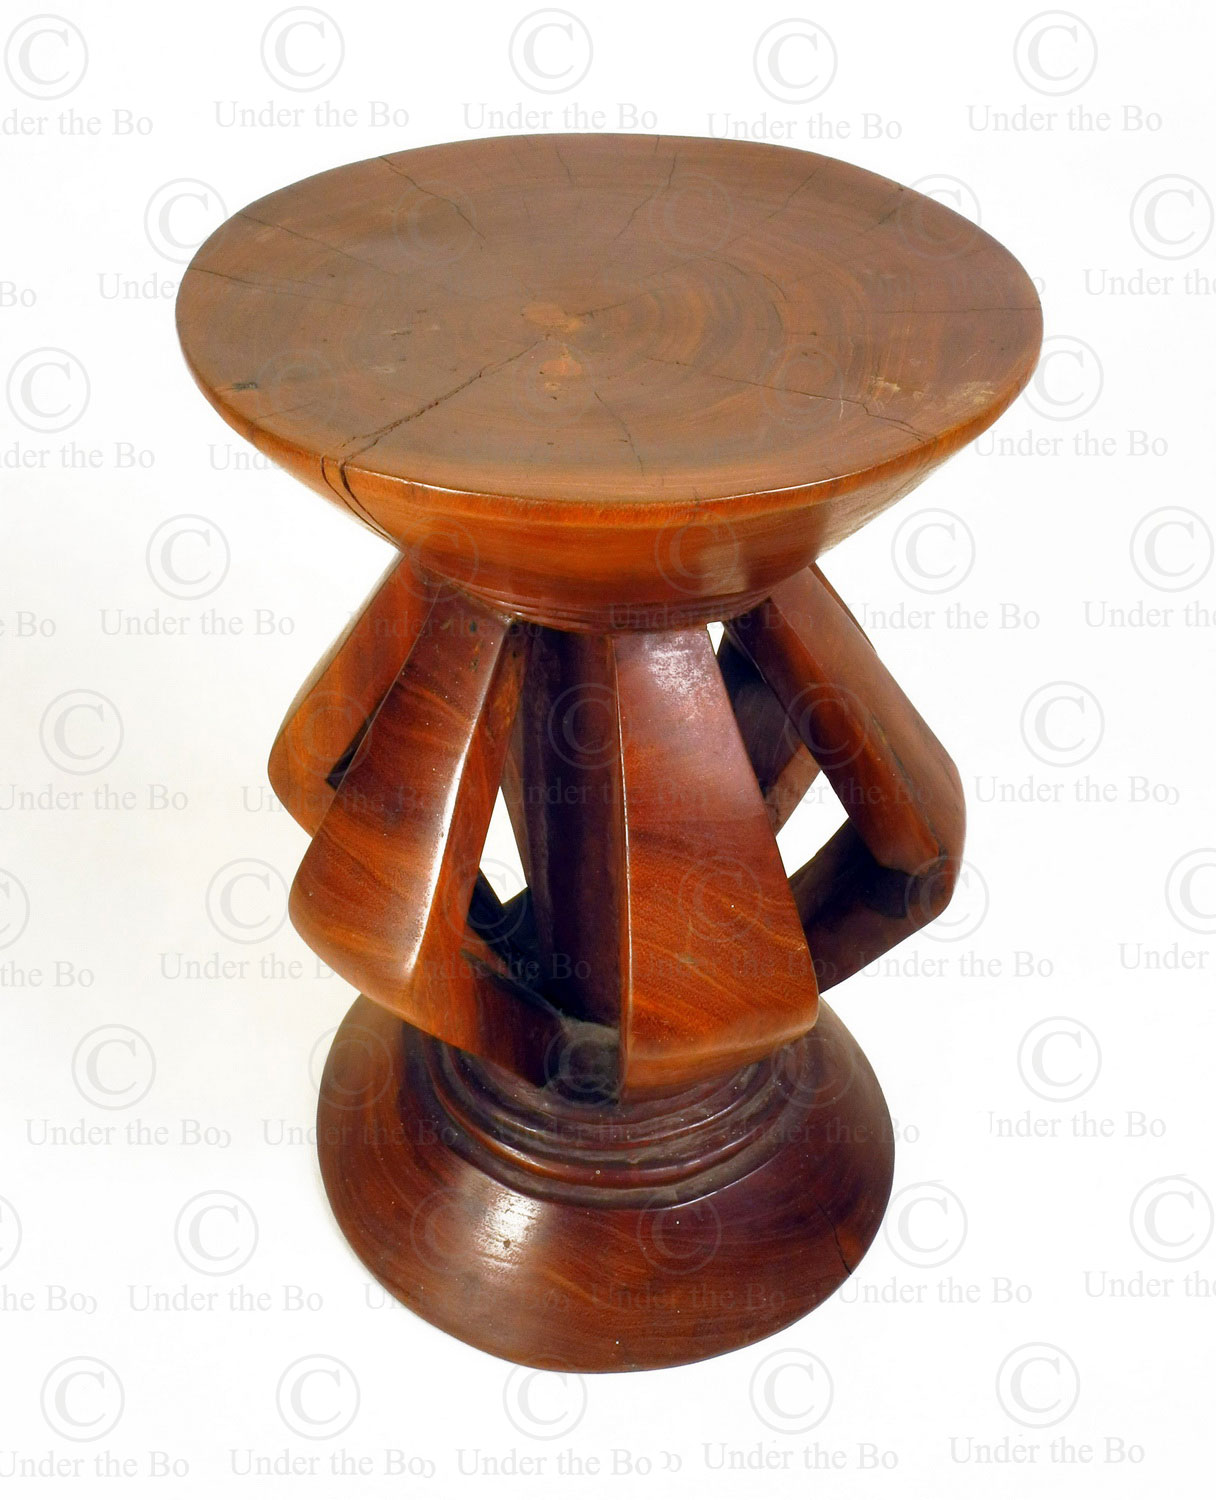 Pende style stool FV319. Made at Under the Bo workshop.